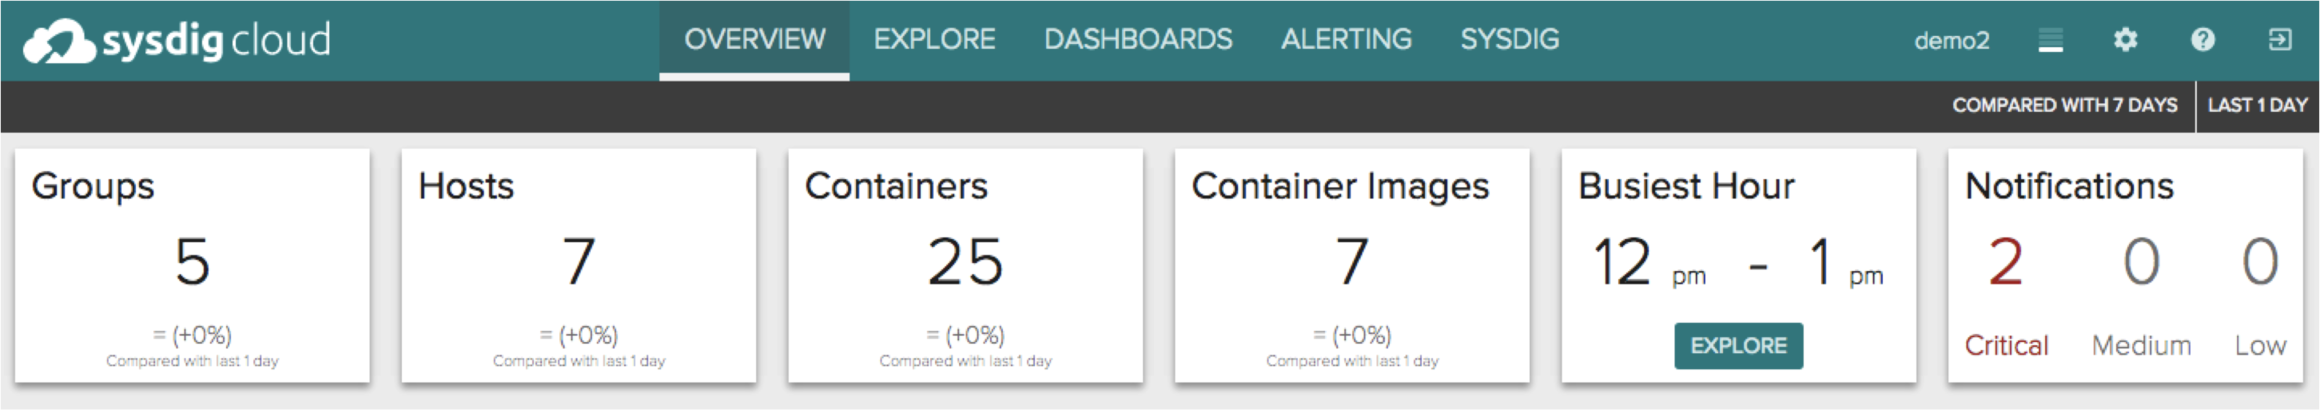 kpi overview page